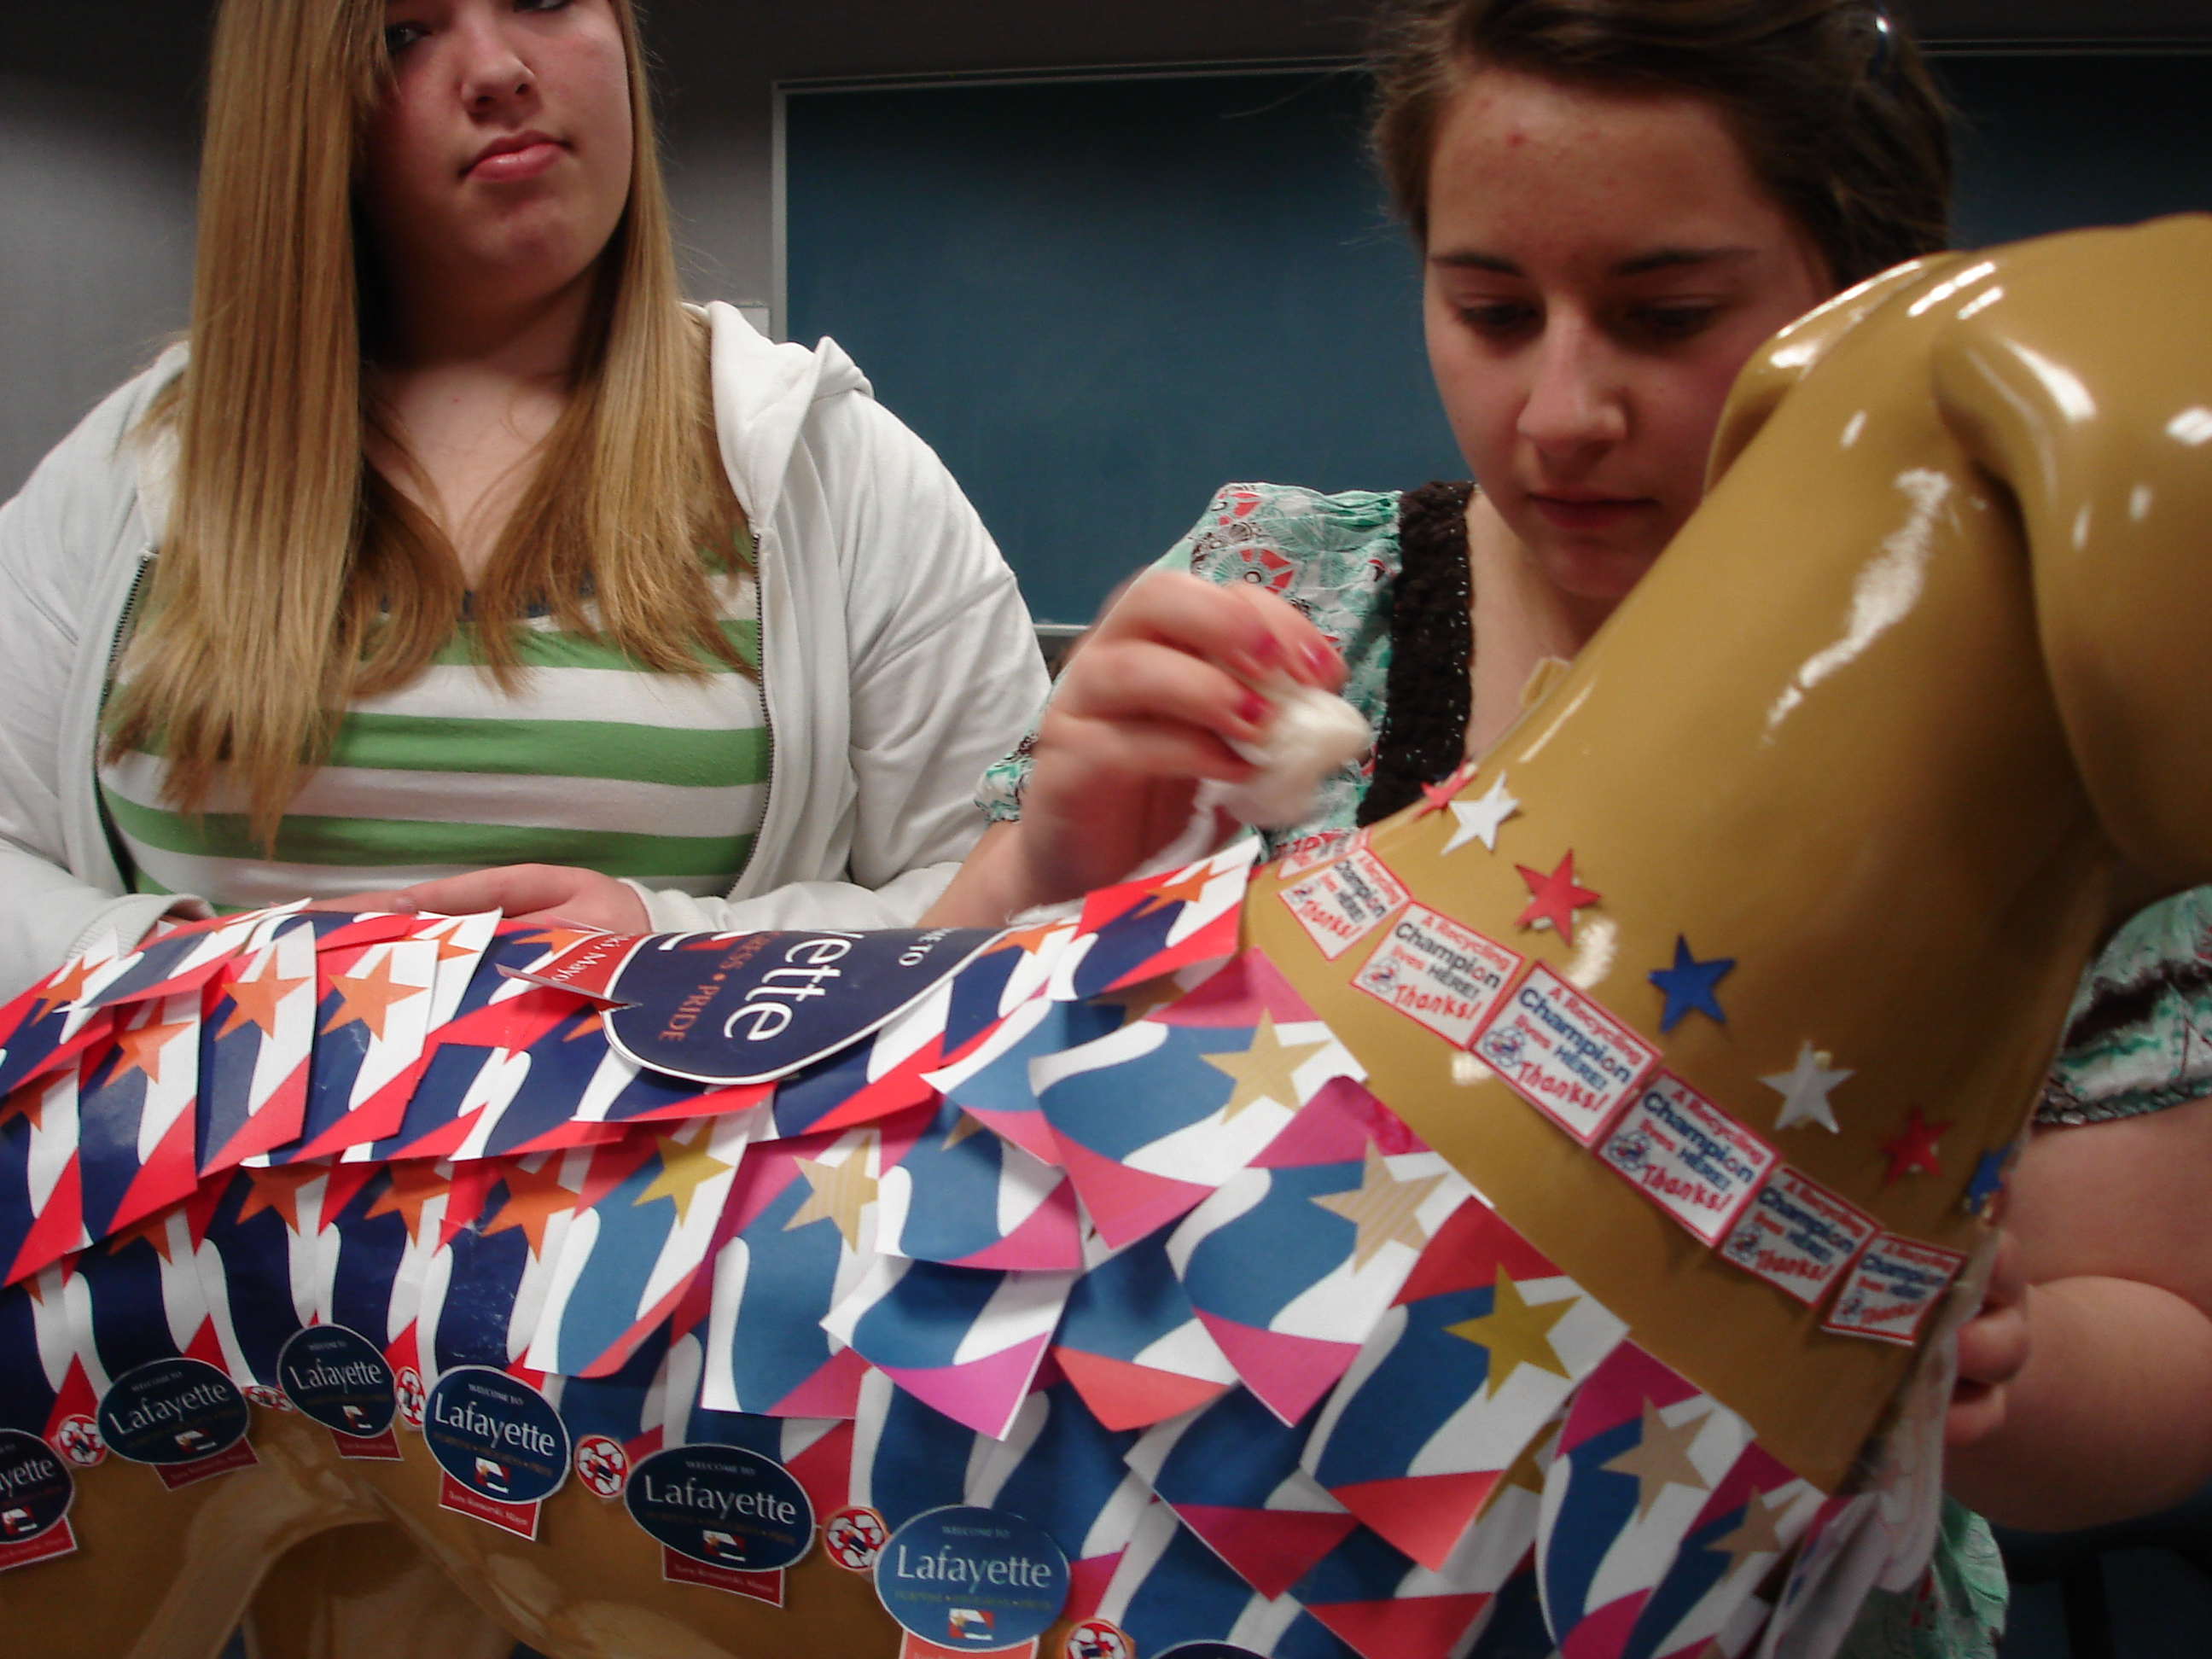 2 girls putting red, white and blue stickers on a plastic dog